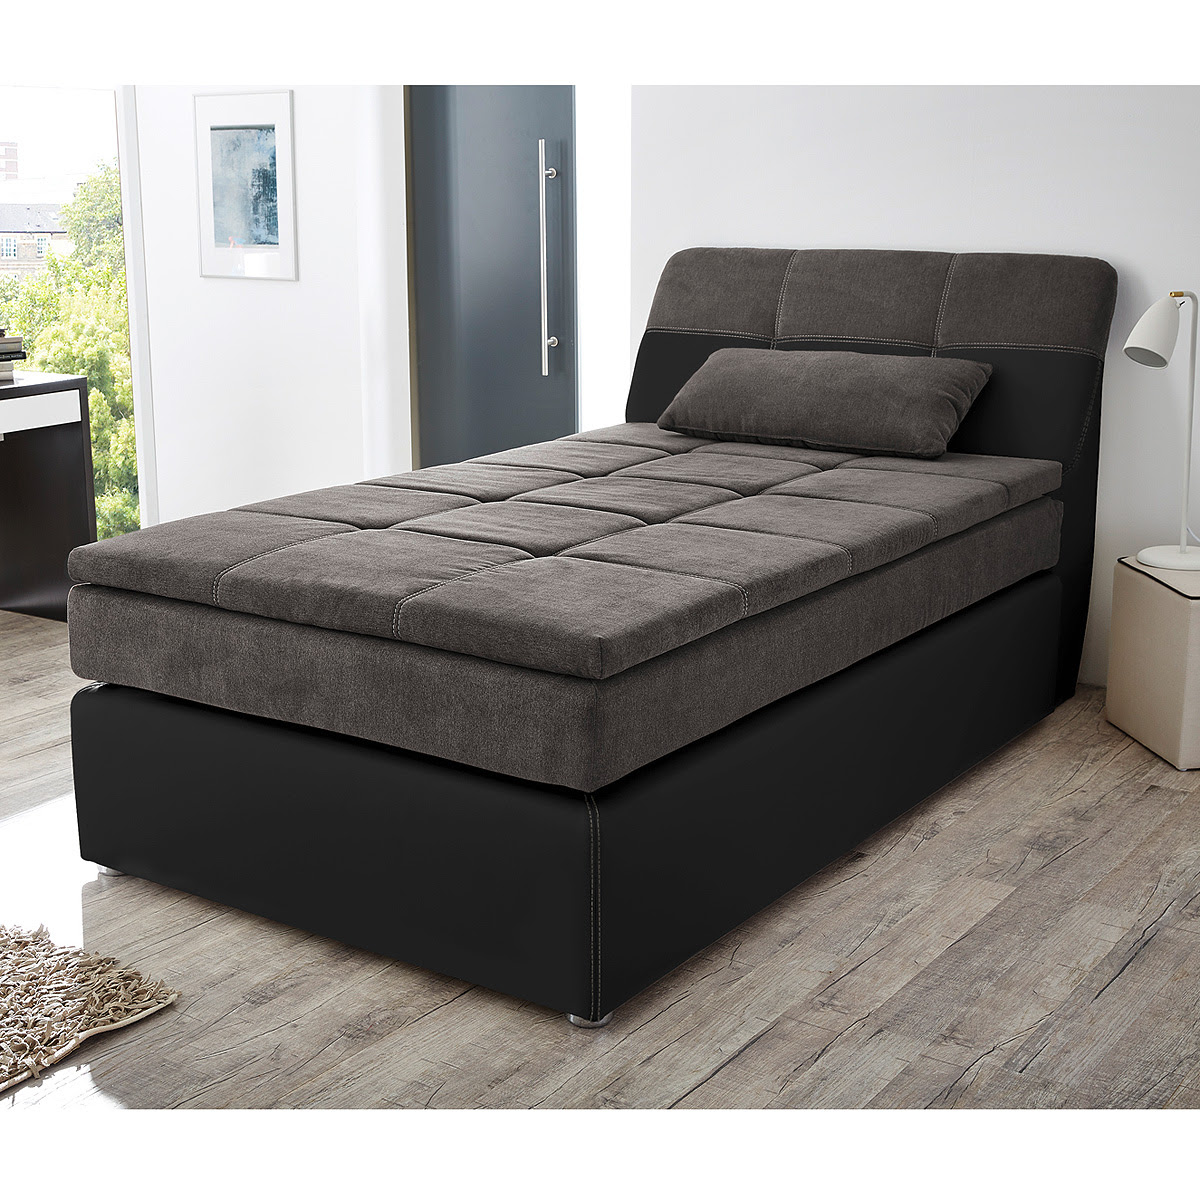 boxspringbetten 120x200. Black Bedroom Furniture Sets. Home Design Ideas